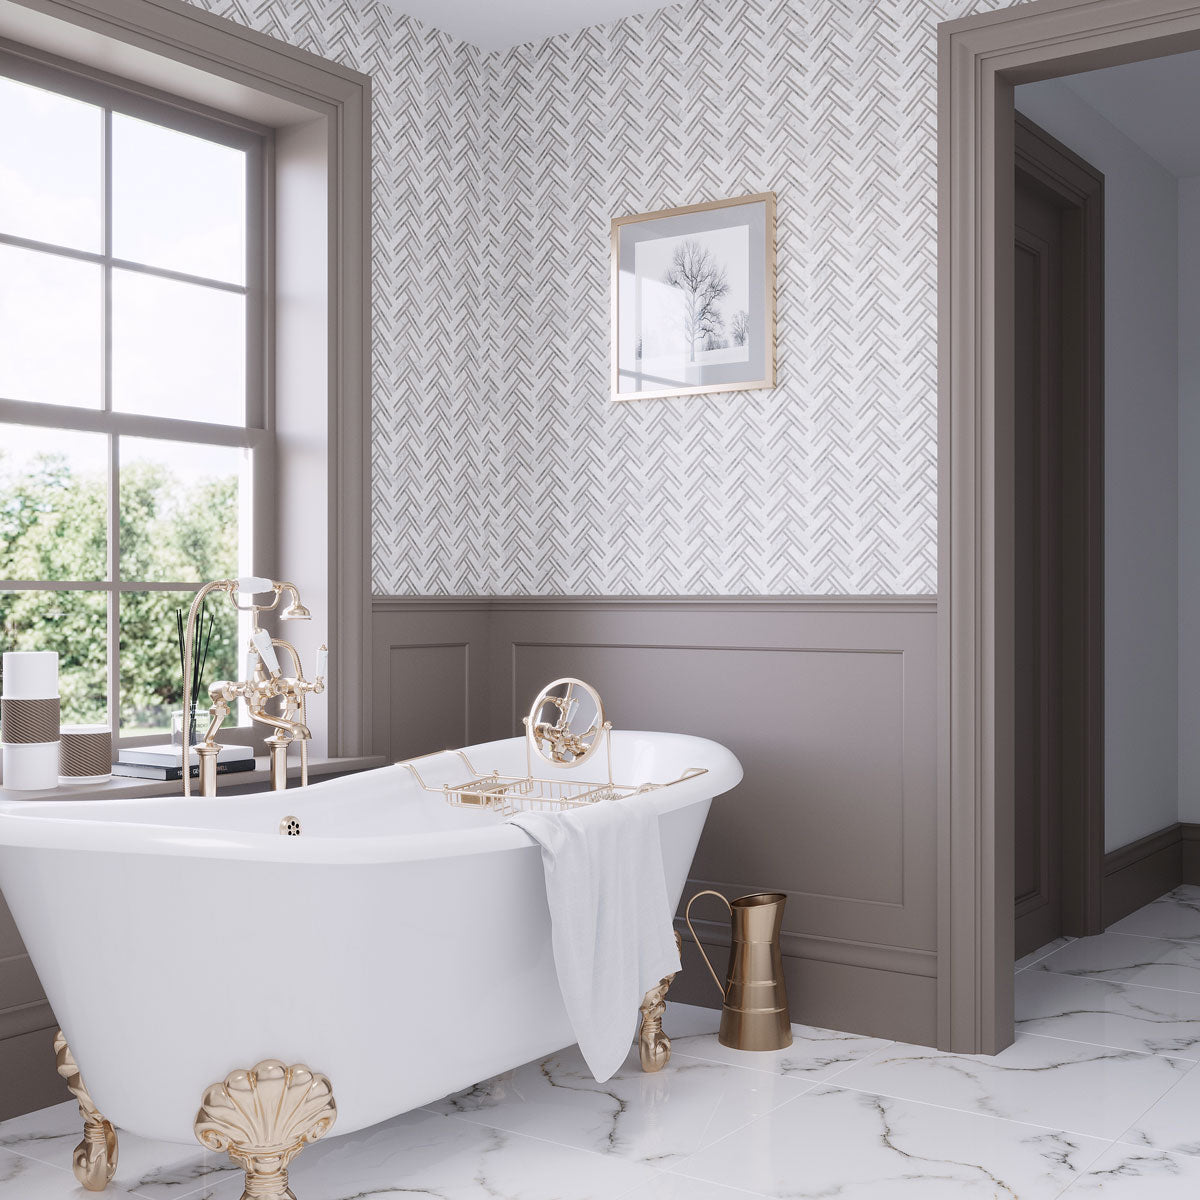 When to have a professional handle your bathroom renovation